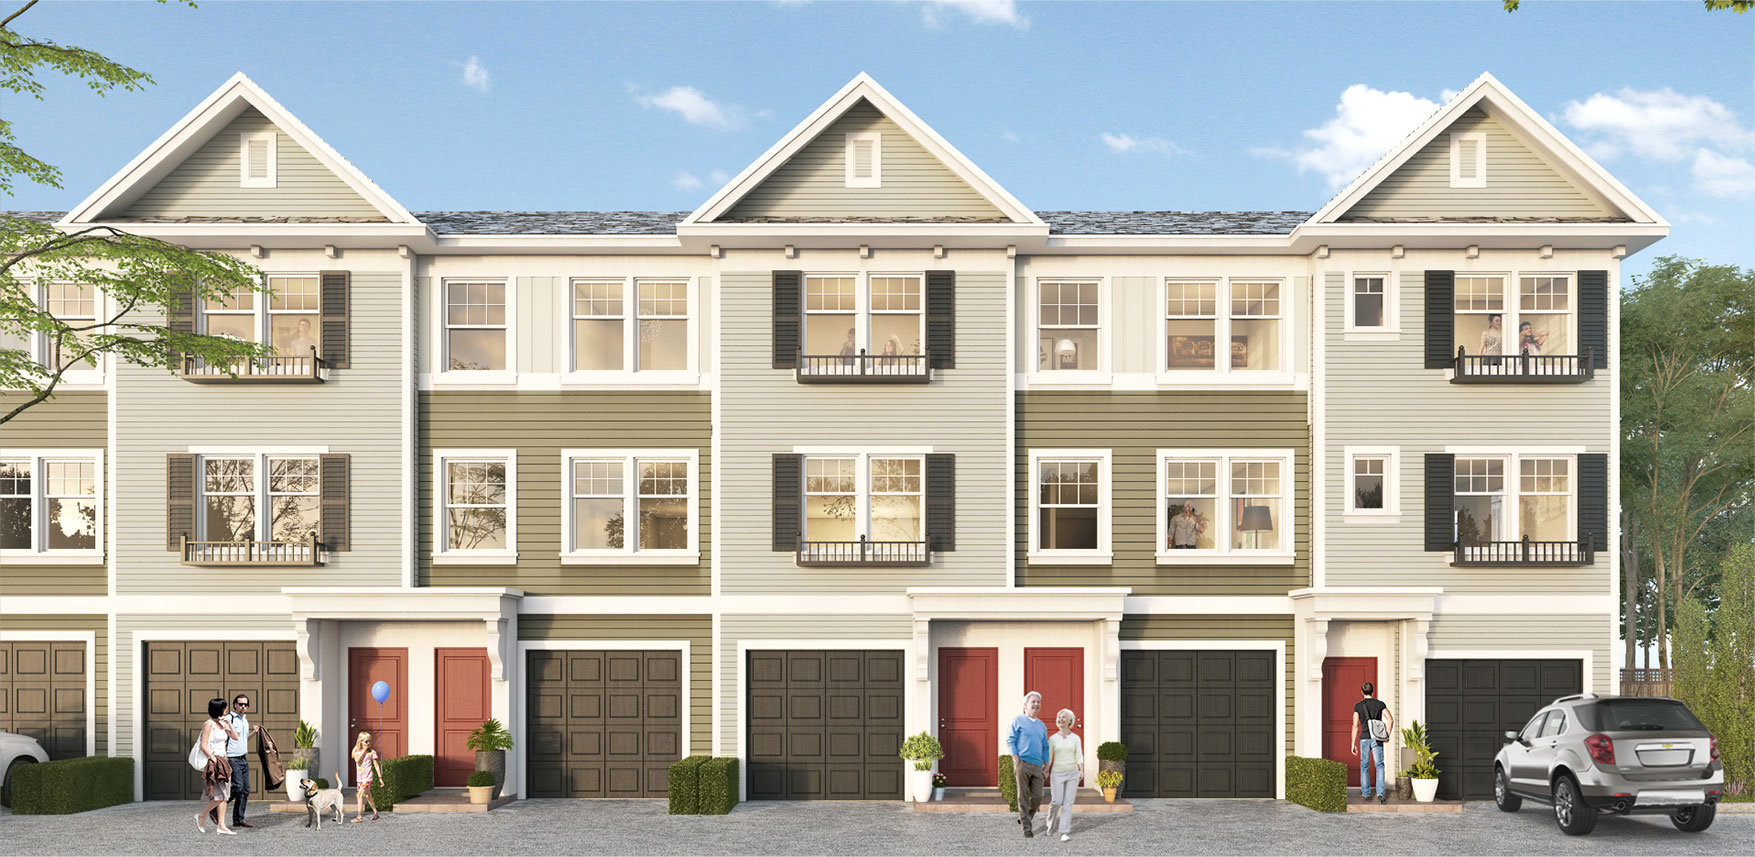 Rendering of Townhouses!